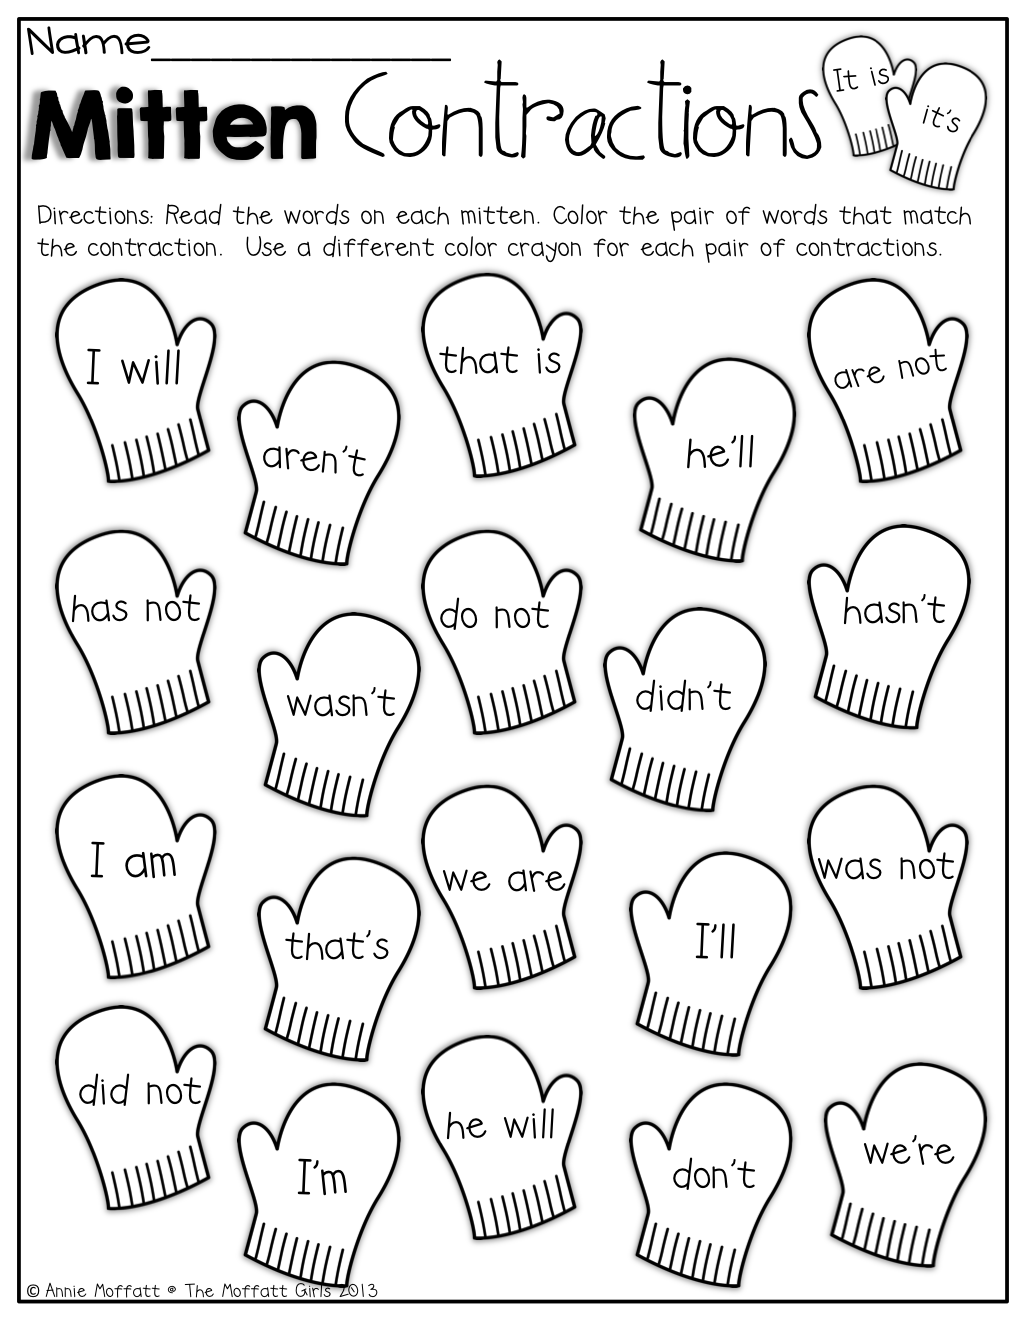 Worksheets Contraction Worksheets For First Grade mitten contractions color the mittens that match contraction contraction